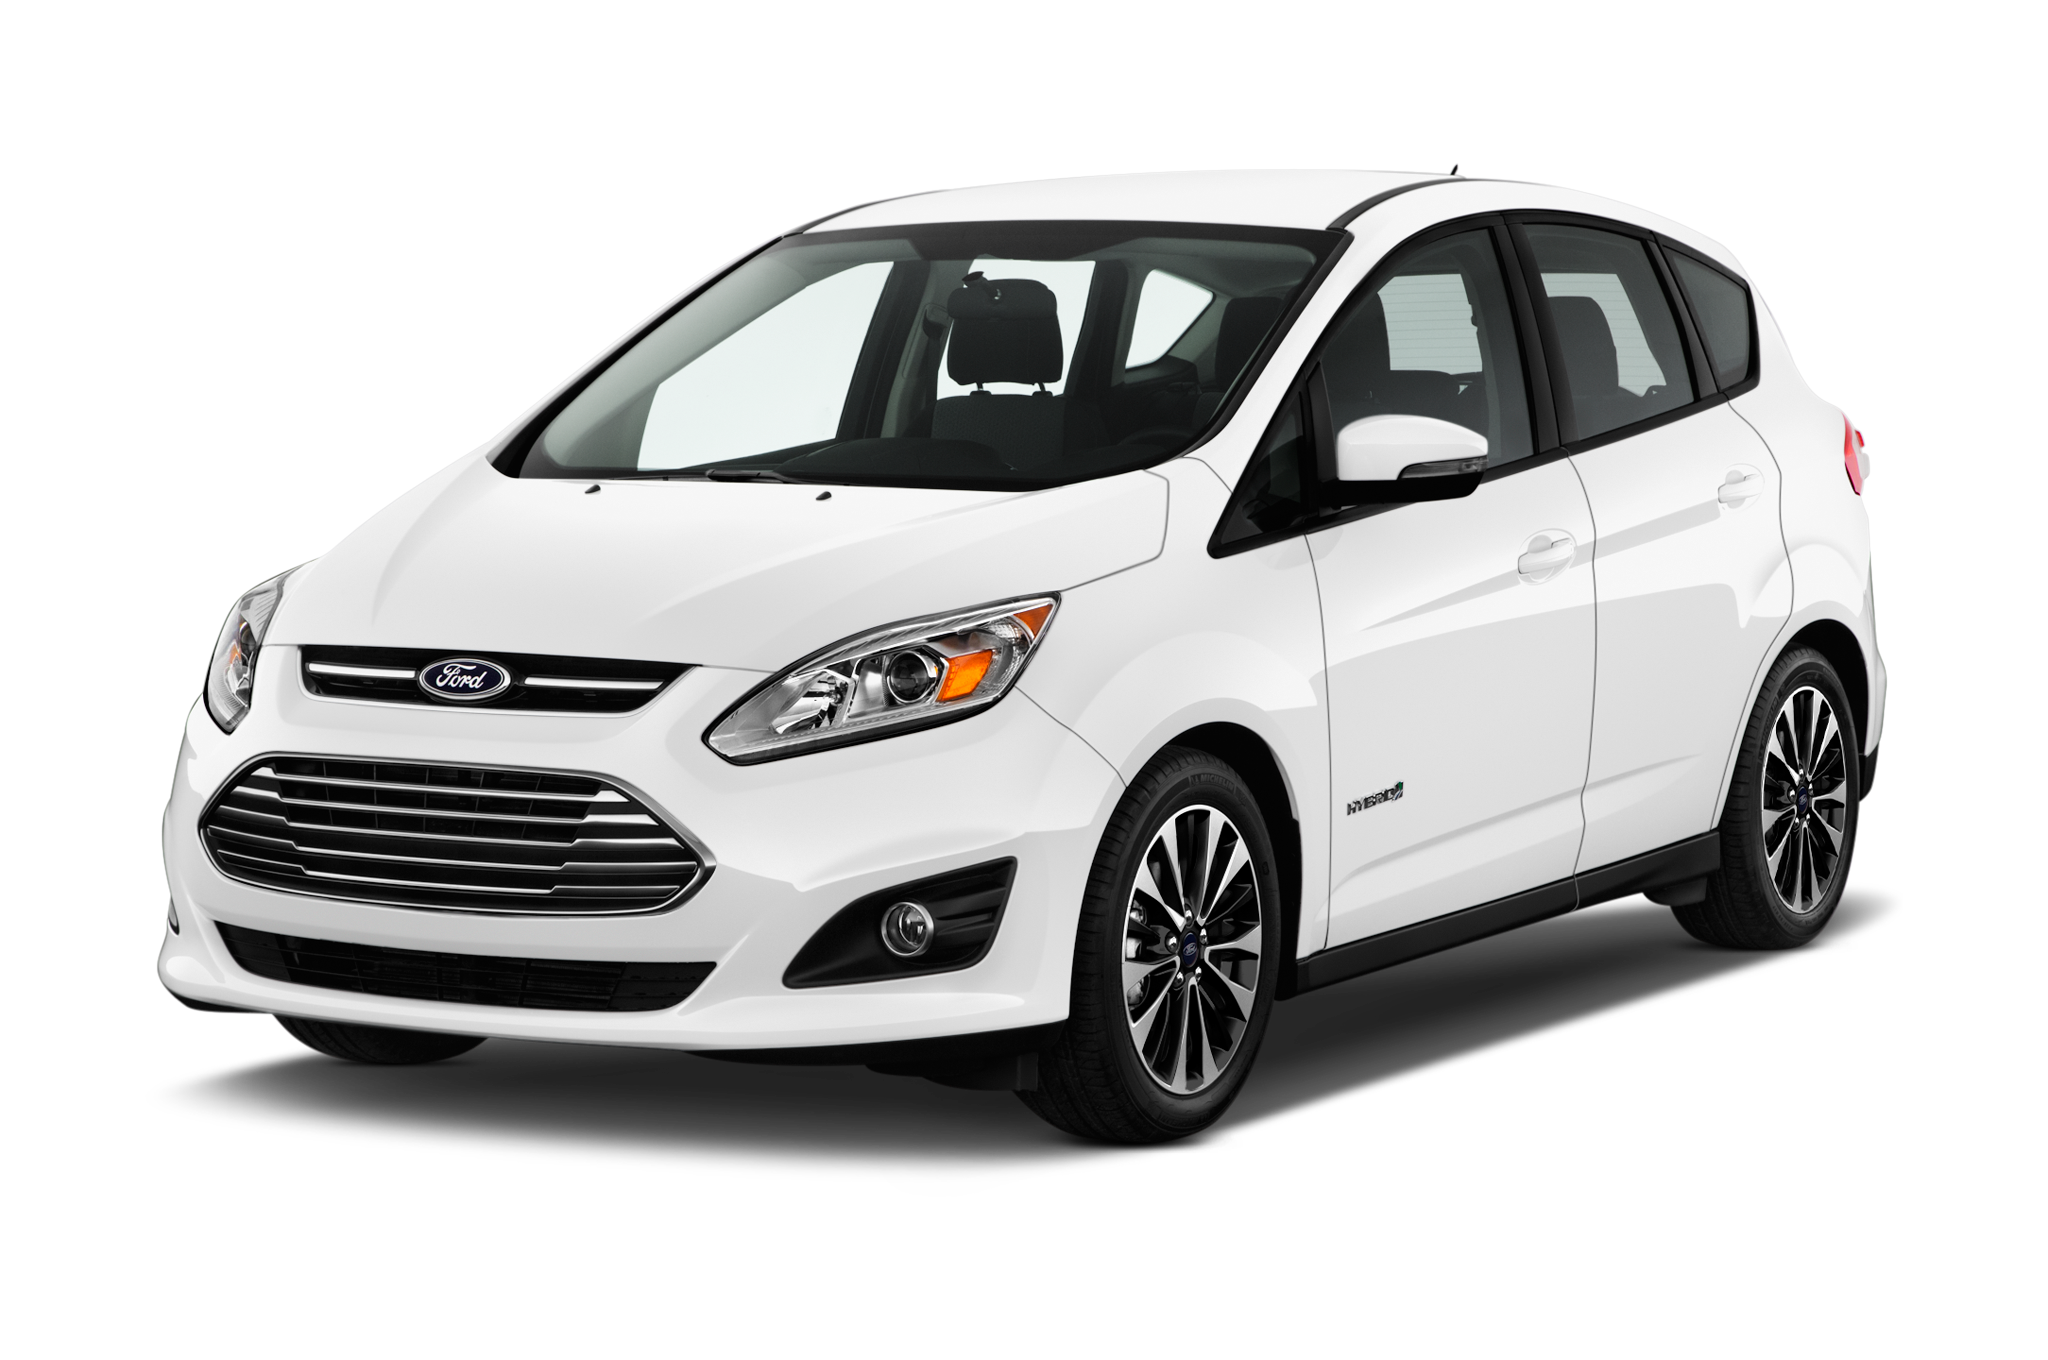 ford c max reviews research new used models motortrend. Black Bedroom Furniture Sets. Home Design Ideas